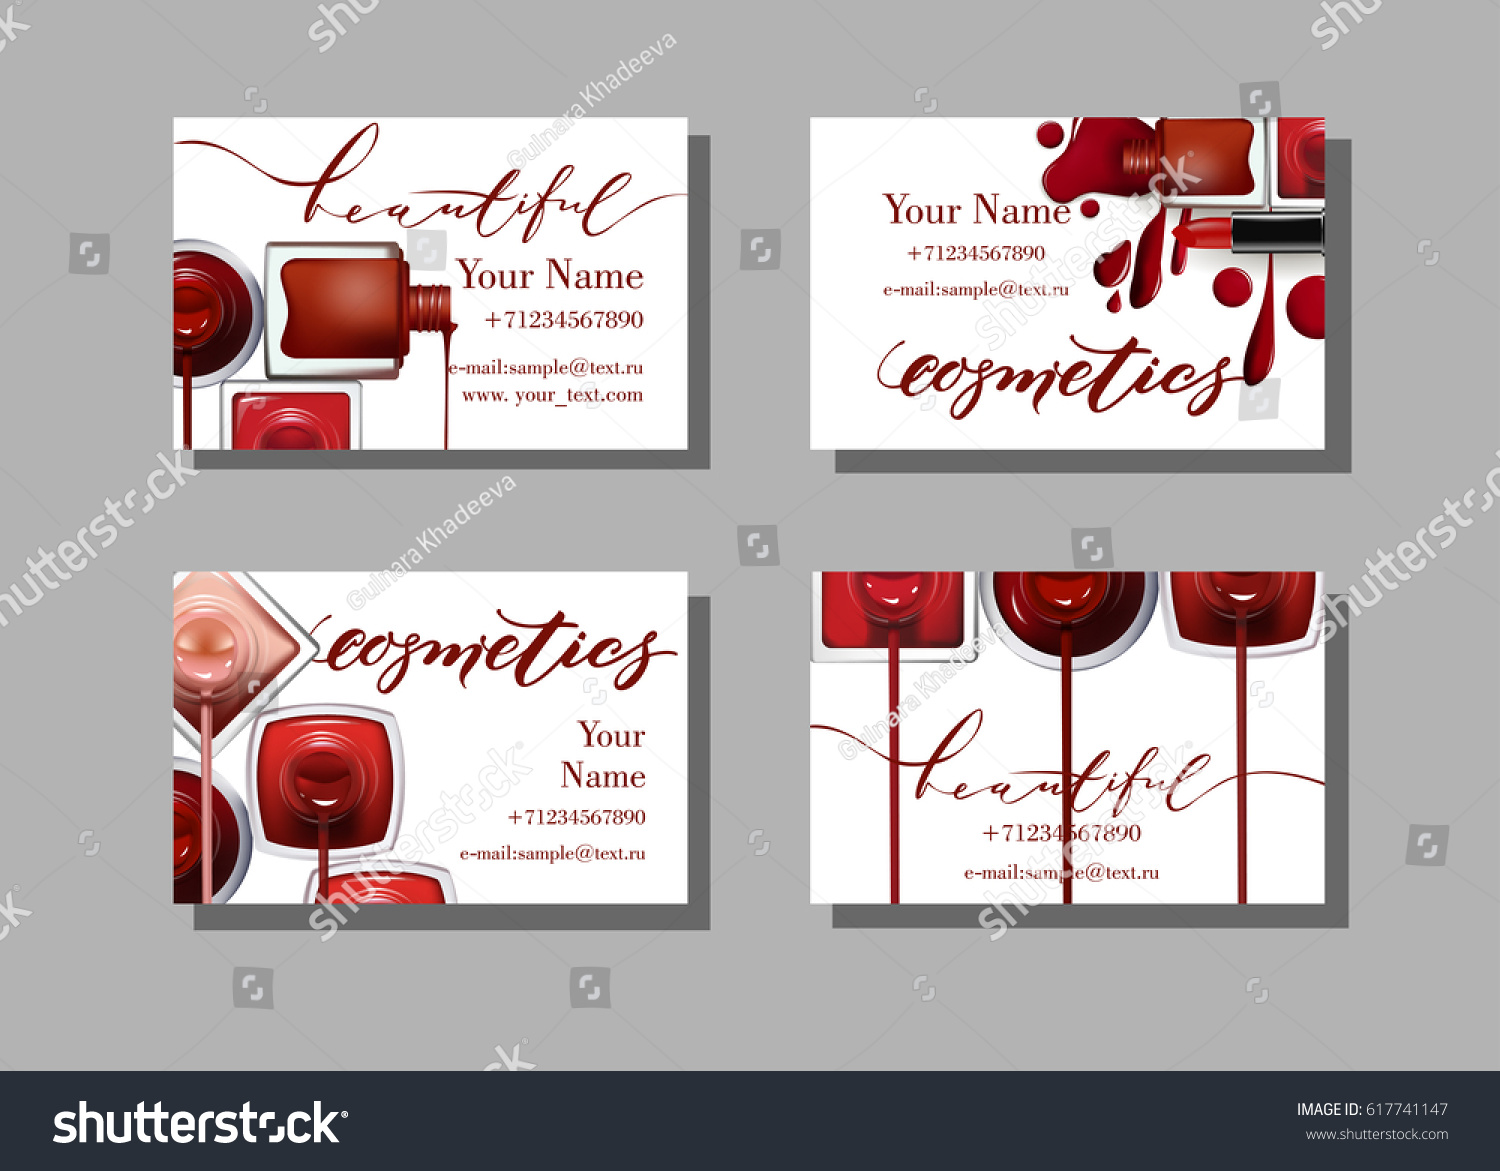 Nail Business Card Image collections - Free Business Cards